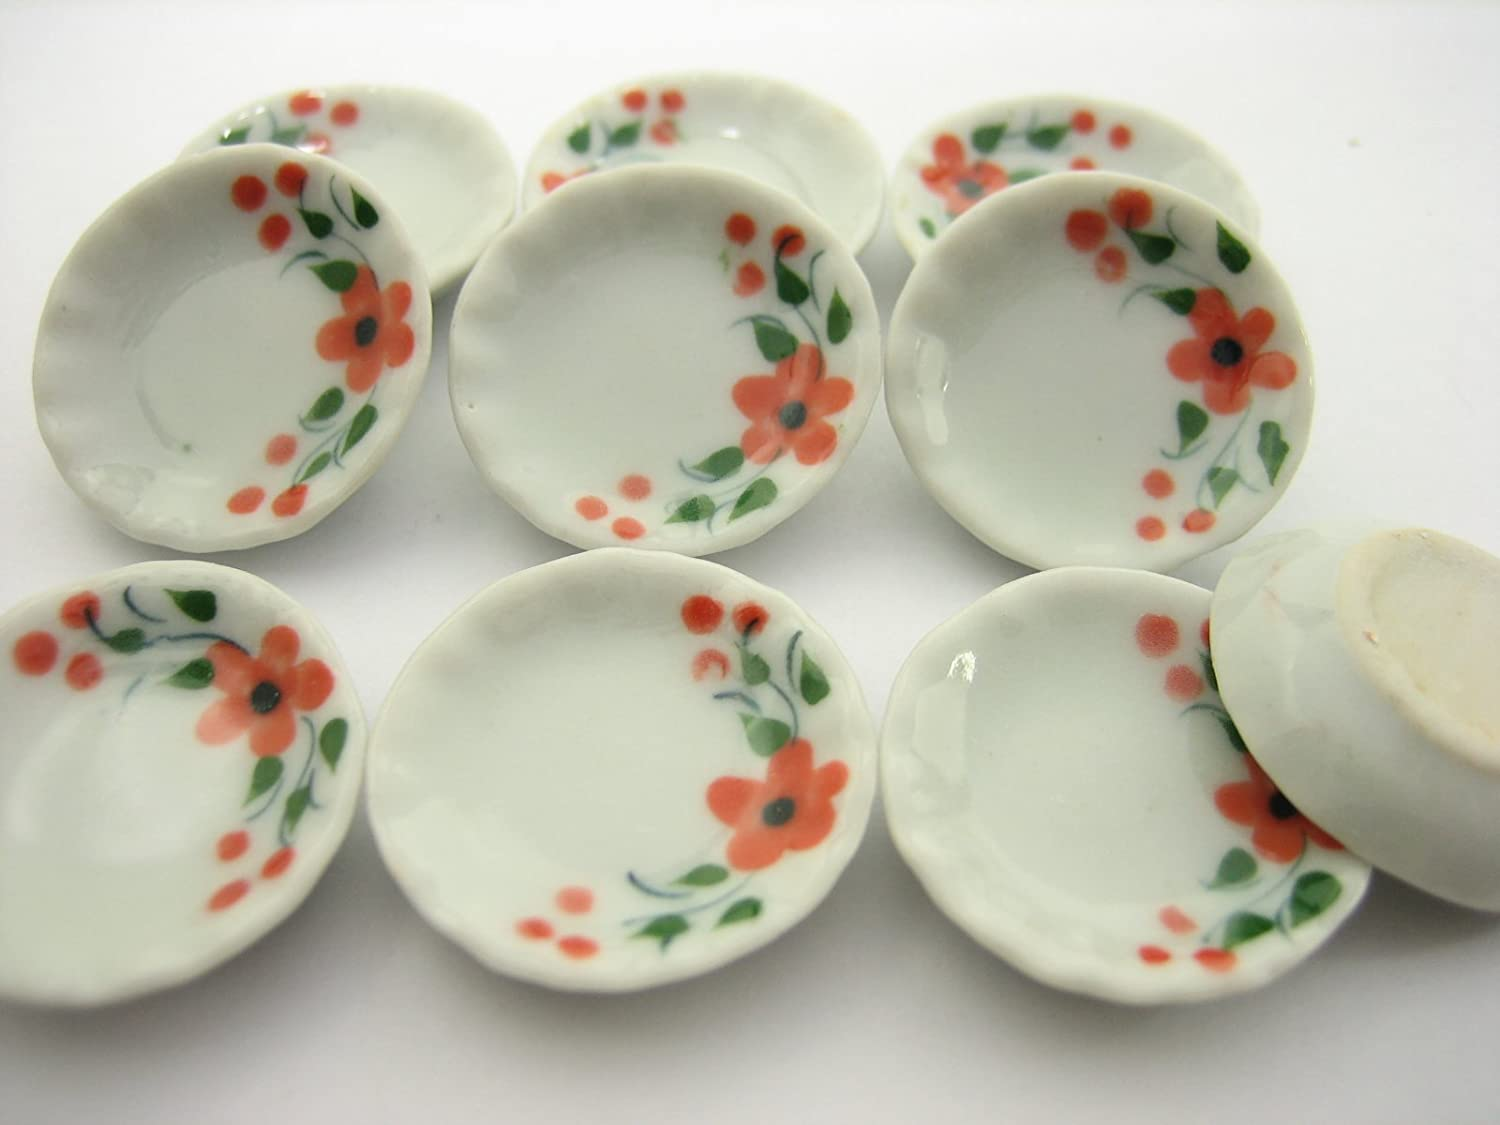 10x25 mm Blue Spotted Bowl Dollhouse Miniatures Ceramic Food Supply Deco